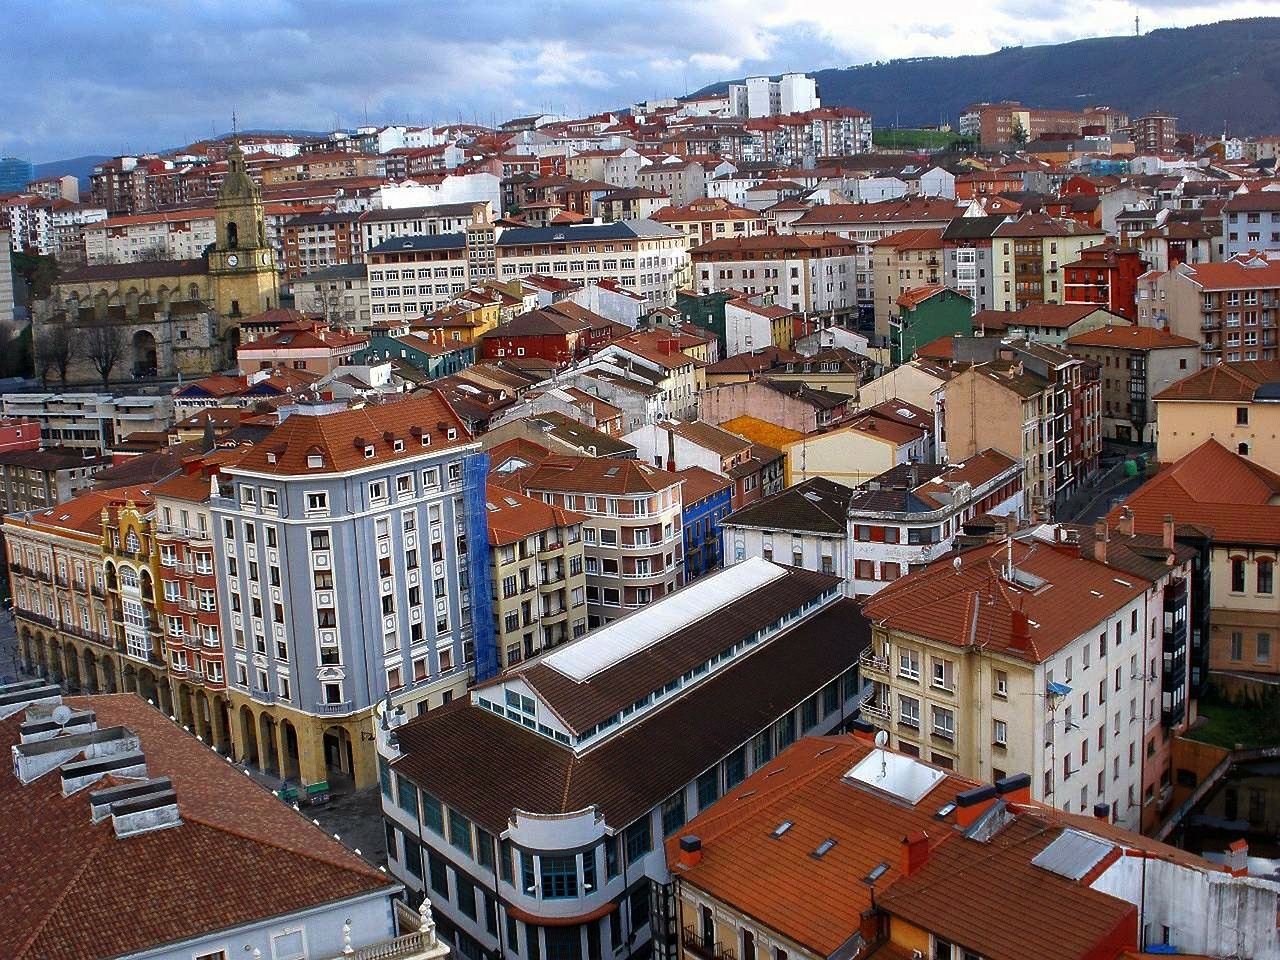 portugalete spain city free photo